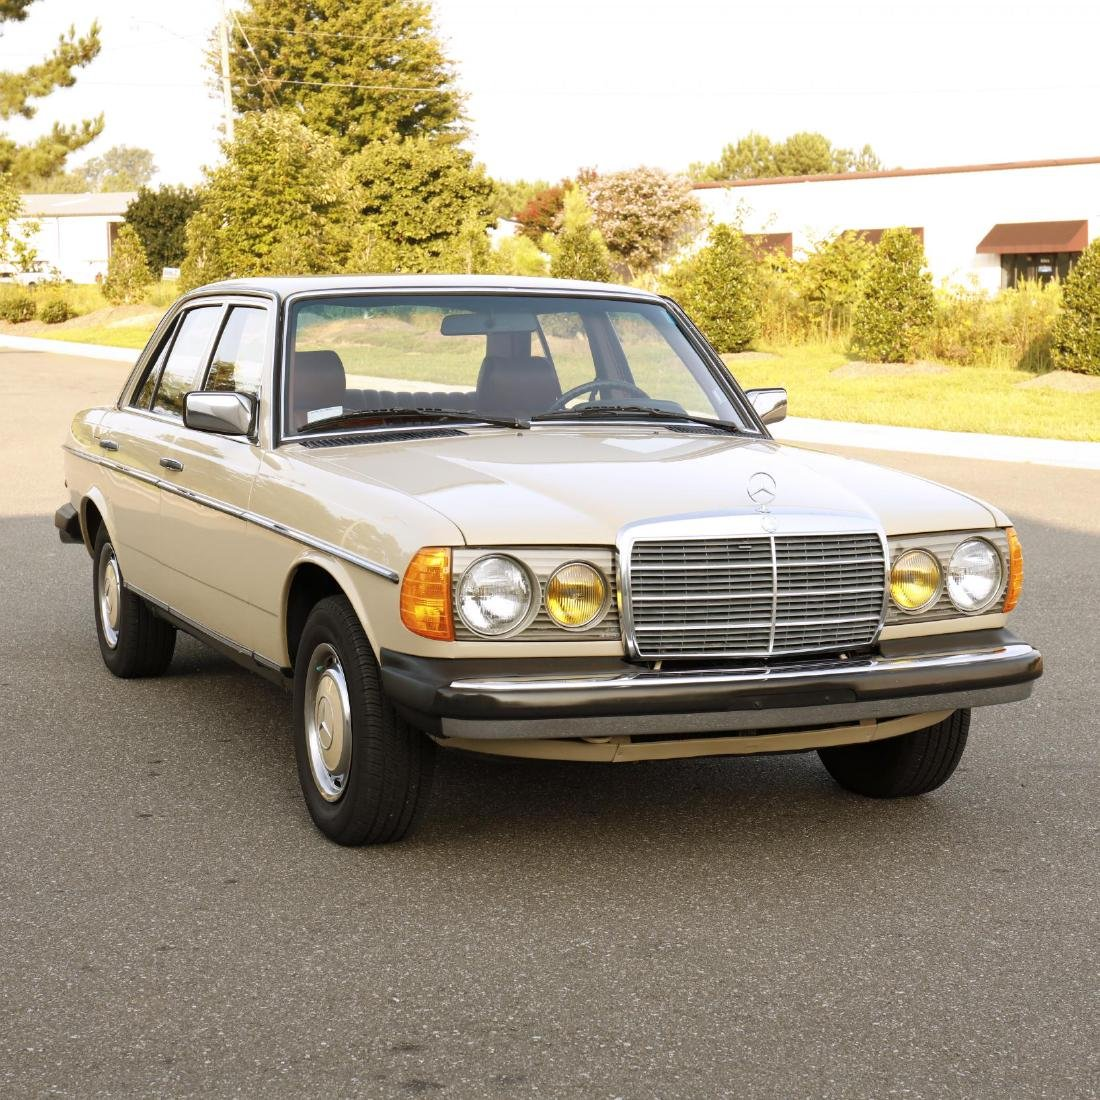 One-Owner 1981 Mercedes Benz 240D - 4